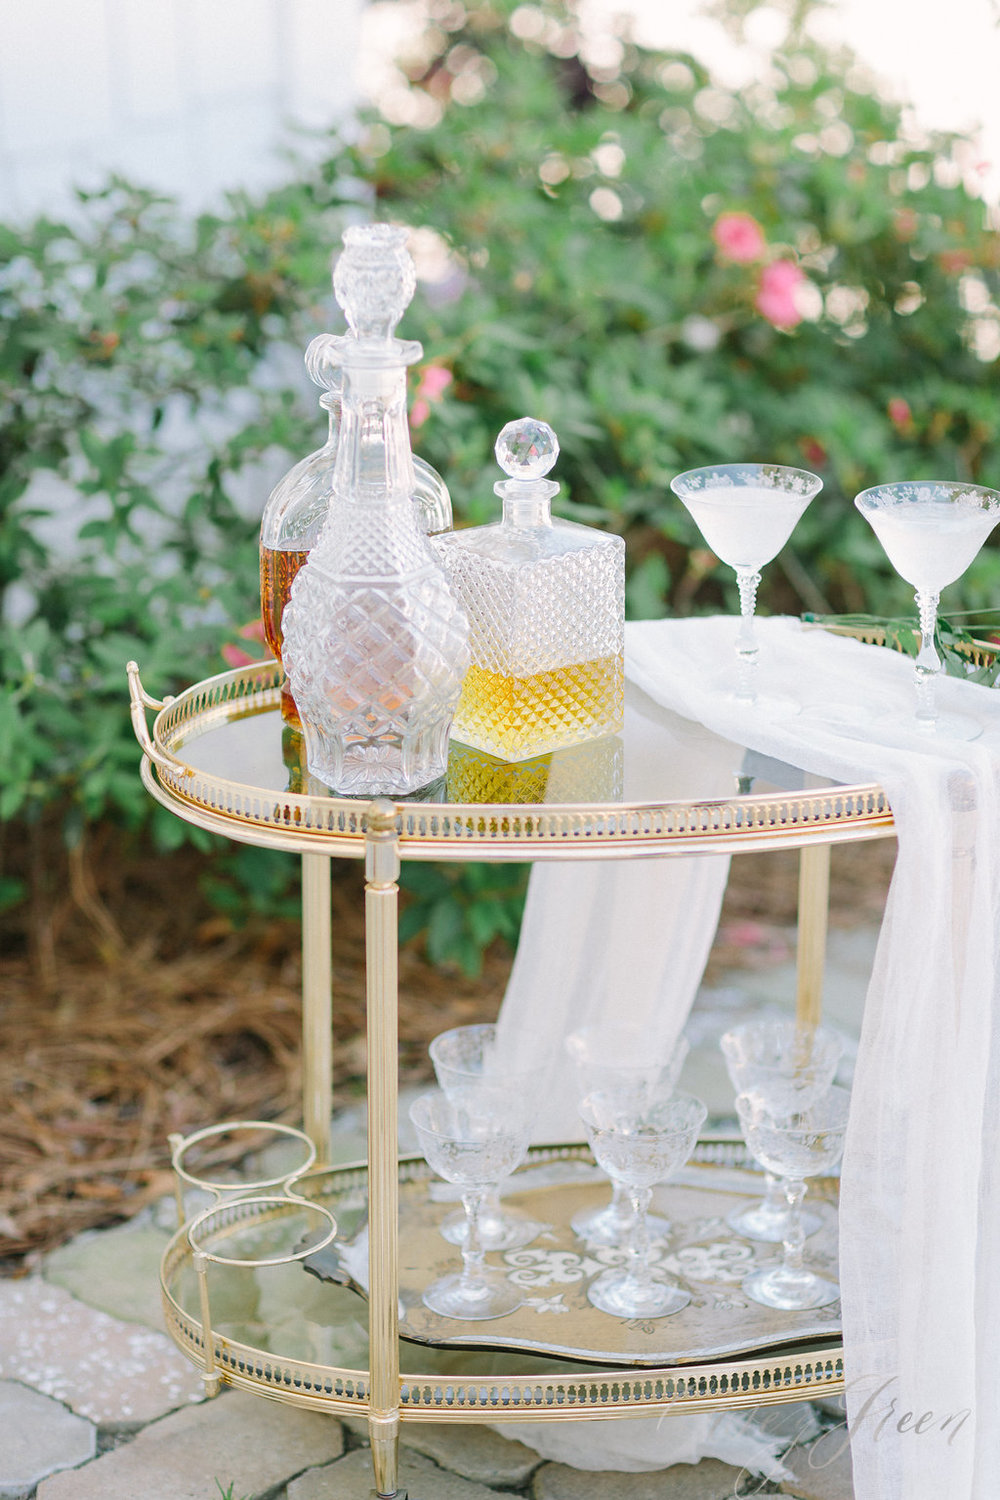 savannah-bridal-shop-ivory-and-beau-bridal-boutique-casey-green-photography-tybee-island-chapel-wedding-planning-mistakes-17.jpg